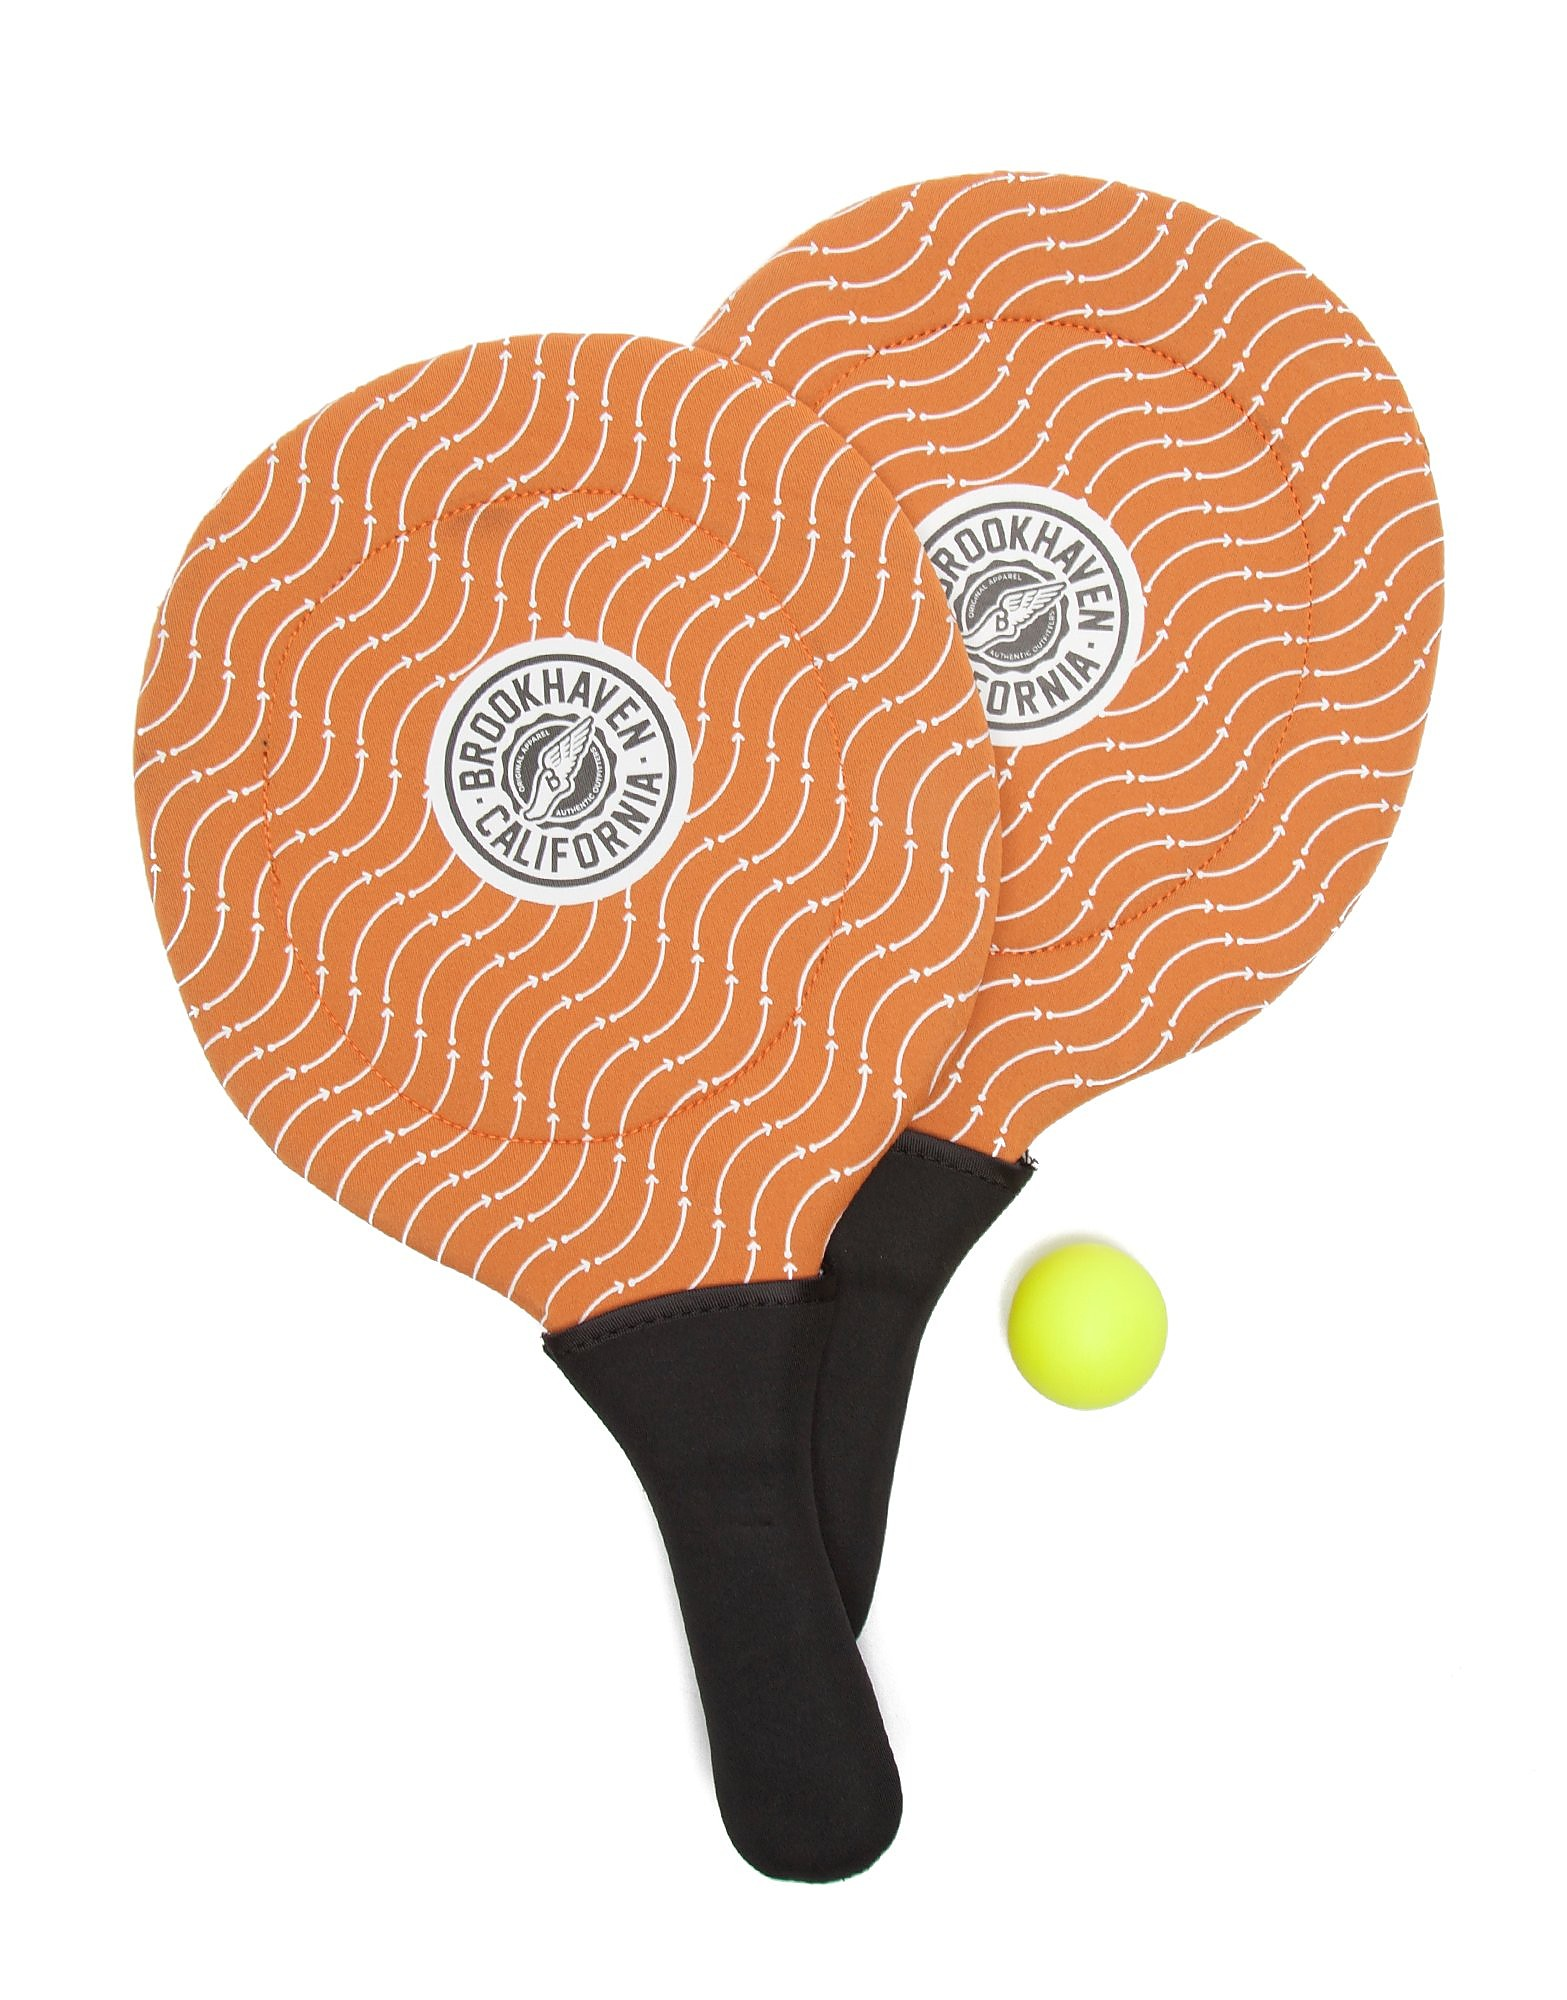 Brookhaven Paddle and Ball Set